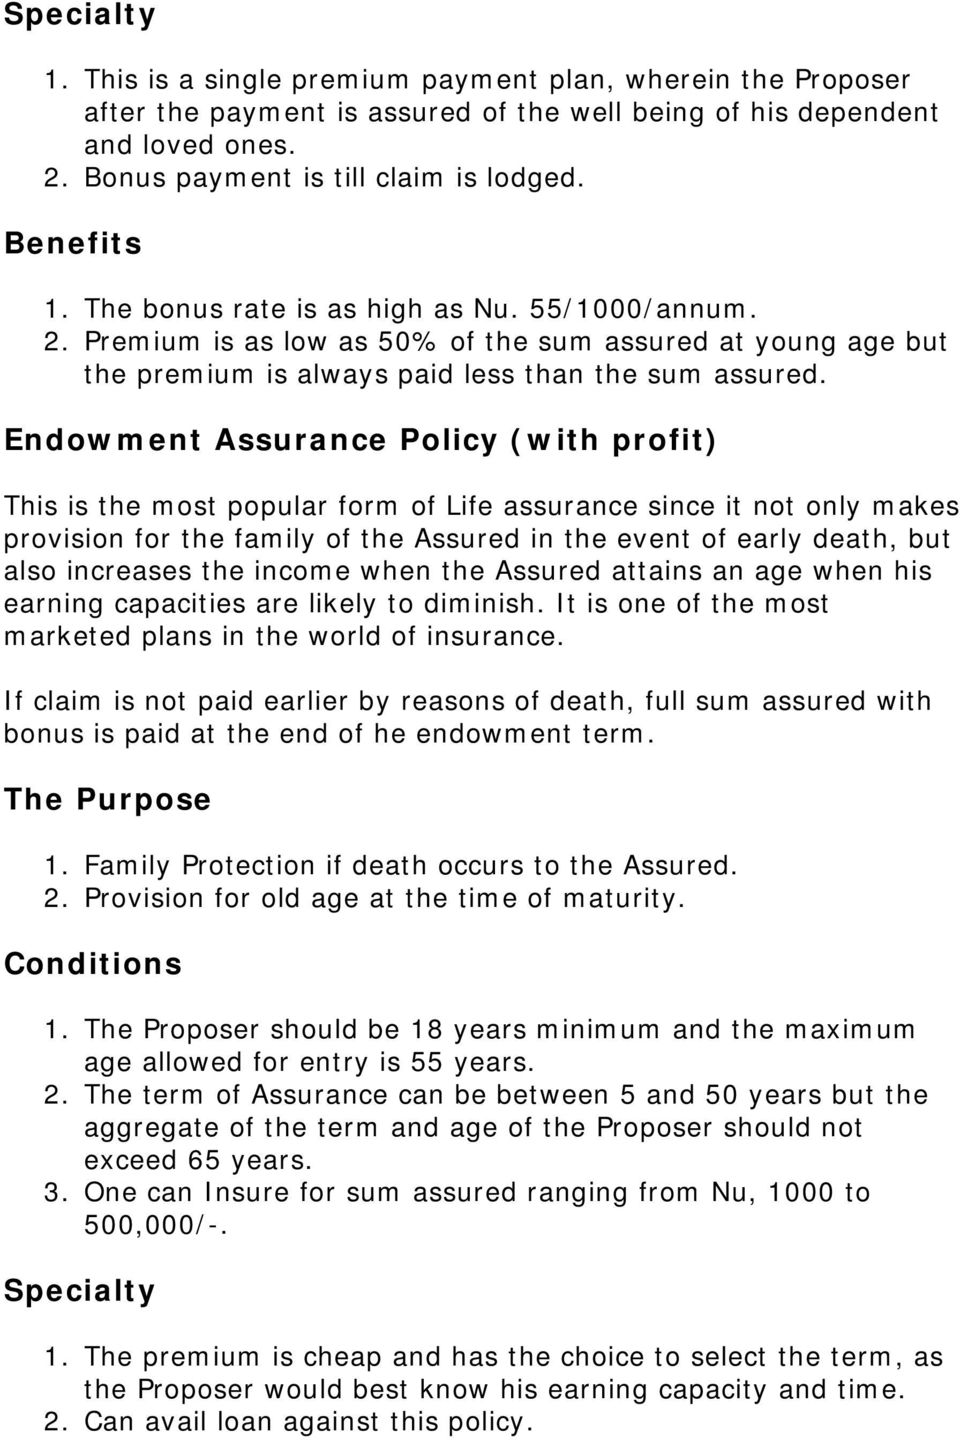 Endowment Assurance Policy (with profit) This is the most popular form of Life assurance since it not only makes provision for the family of the Assured in the event of early death, but also